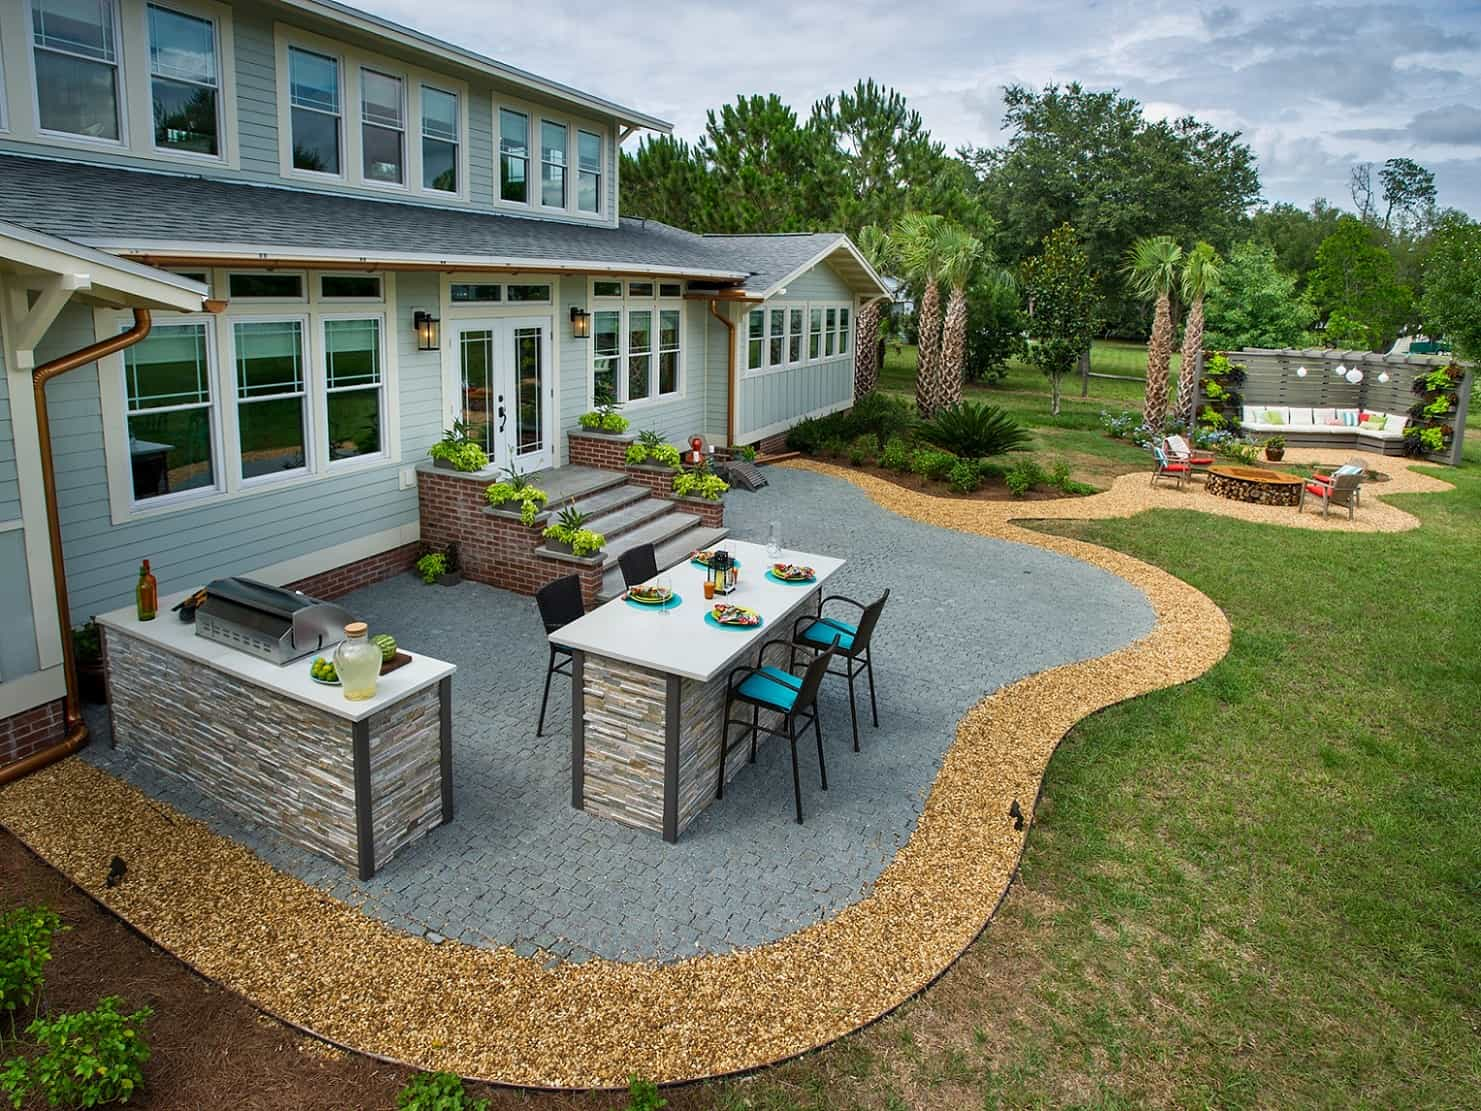 Fabulous Patios Designs That Will Leave You Speechless ... on Home Backyard Ideas id=13796